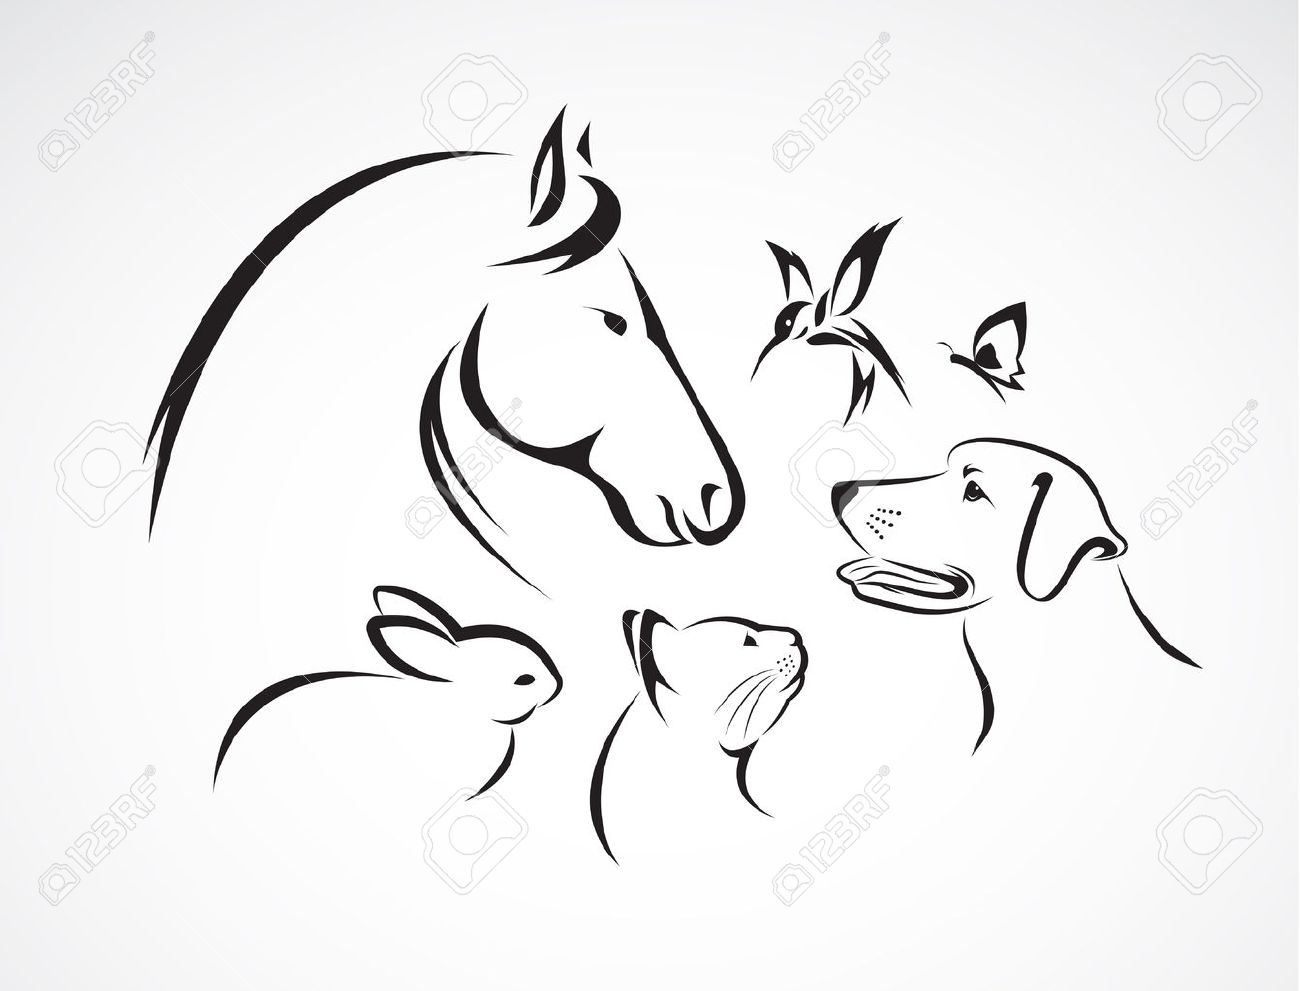 group of pets horse dog cat bird butterfly rabbit isolated